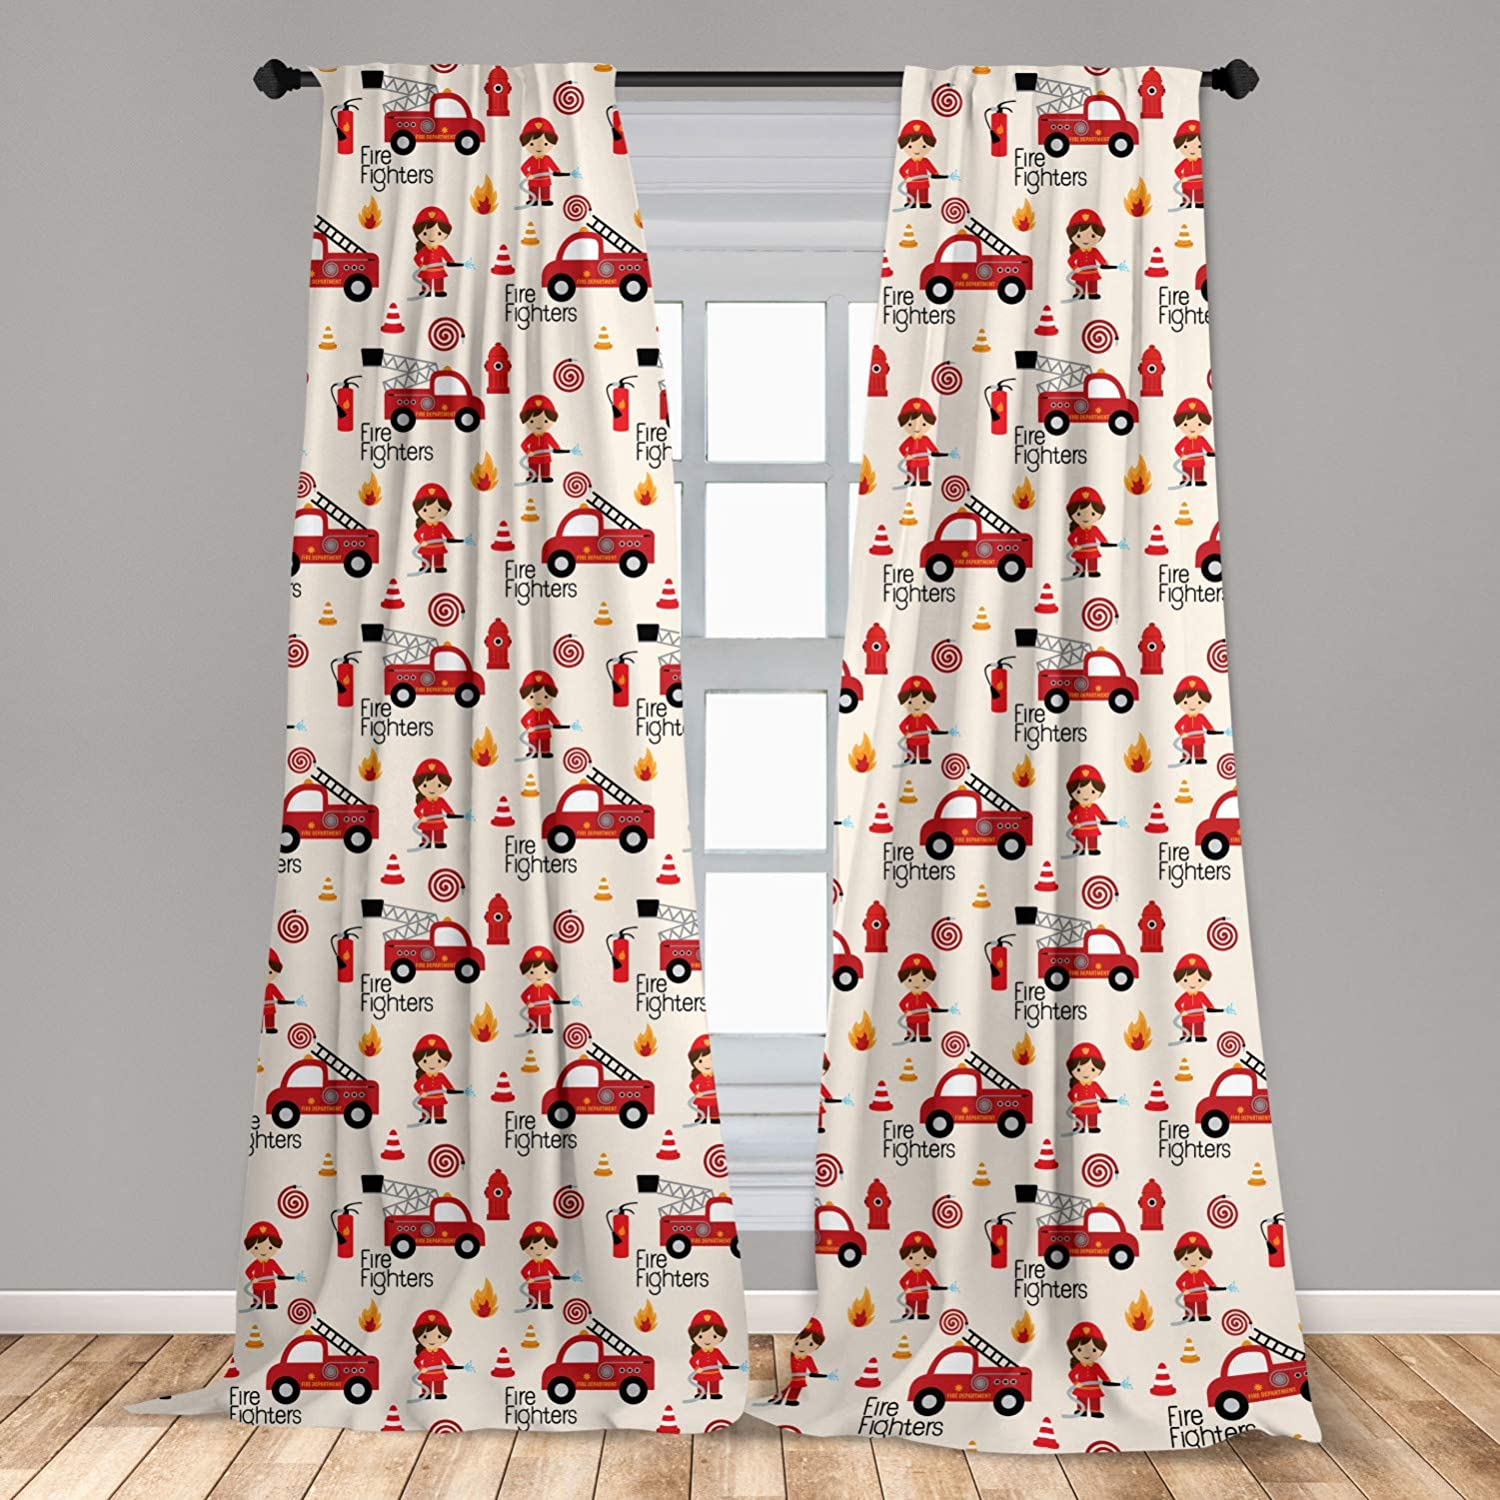 "Lunarable Fire Truck Curtains, Little Boys and Girls in Uniforms Fire Fighters Theme Career Profession Pattern, Window Treatments 2 Panel Set for Living Room Bedroom Decor, 56"" x 84"", Red Cream"